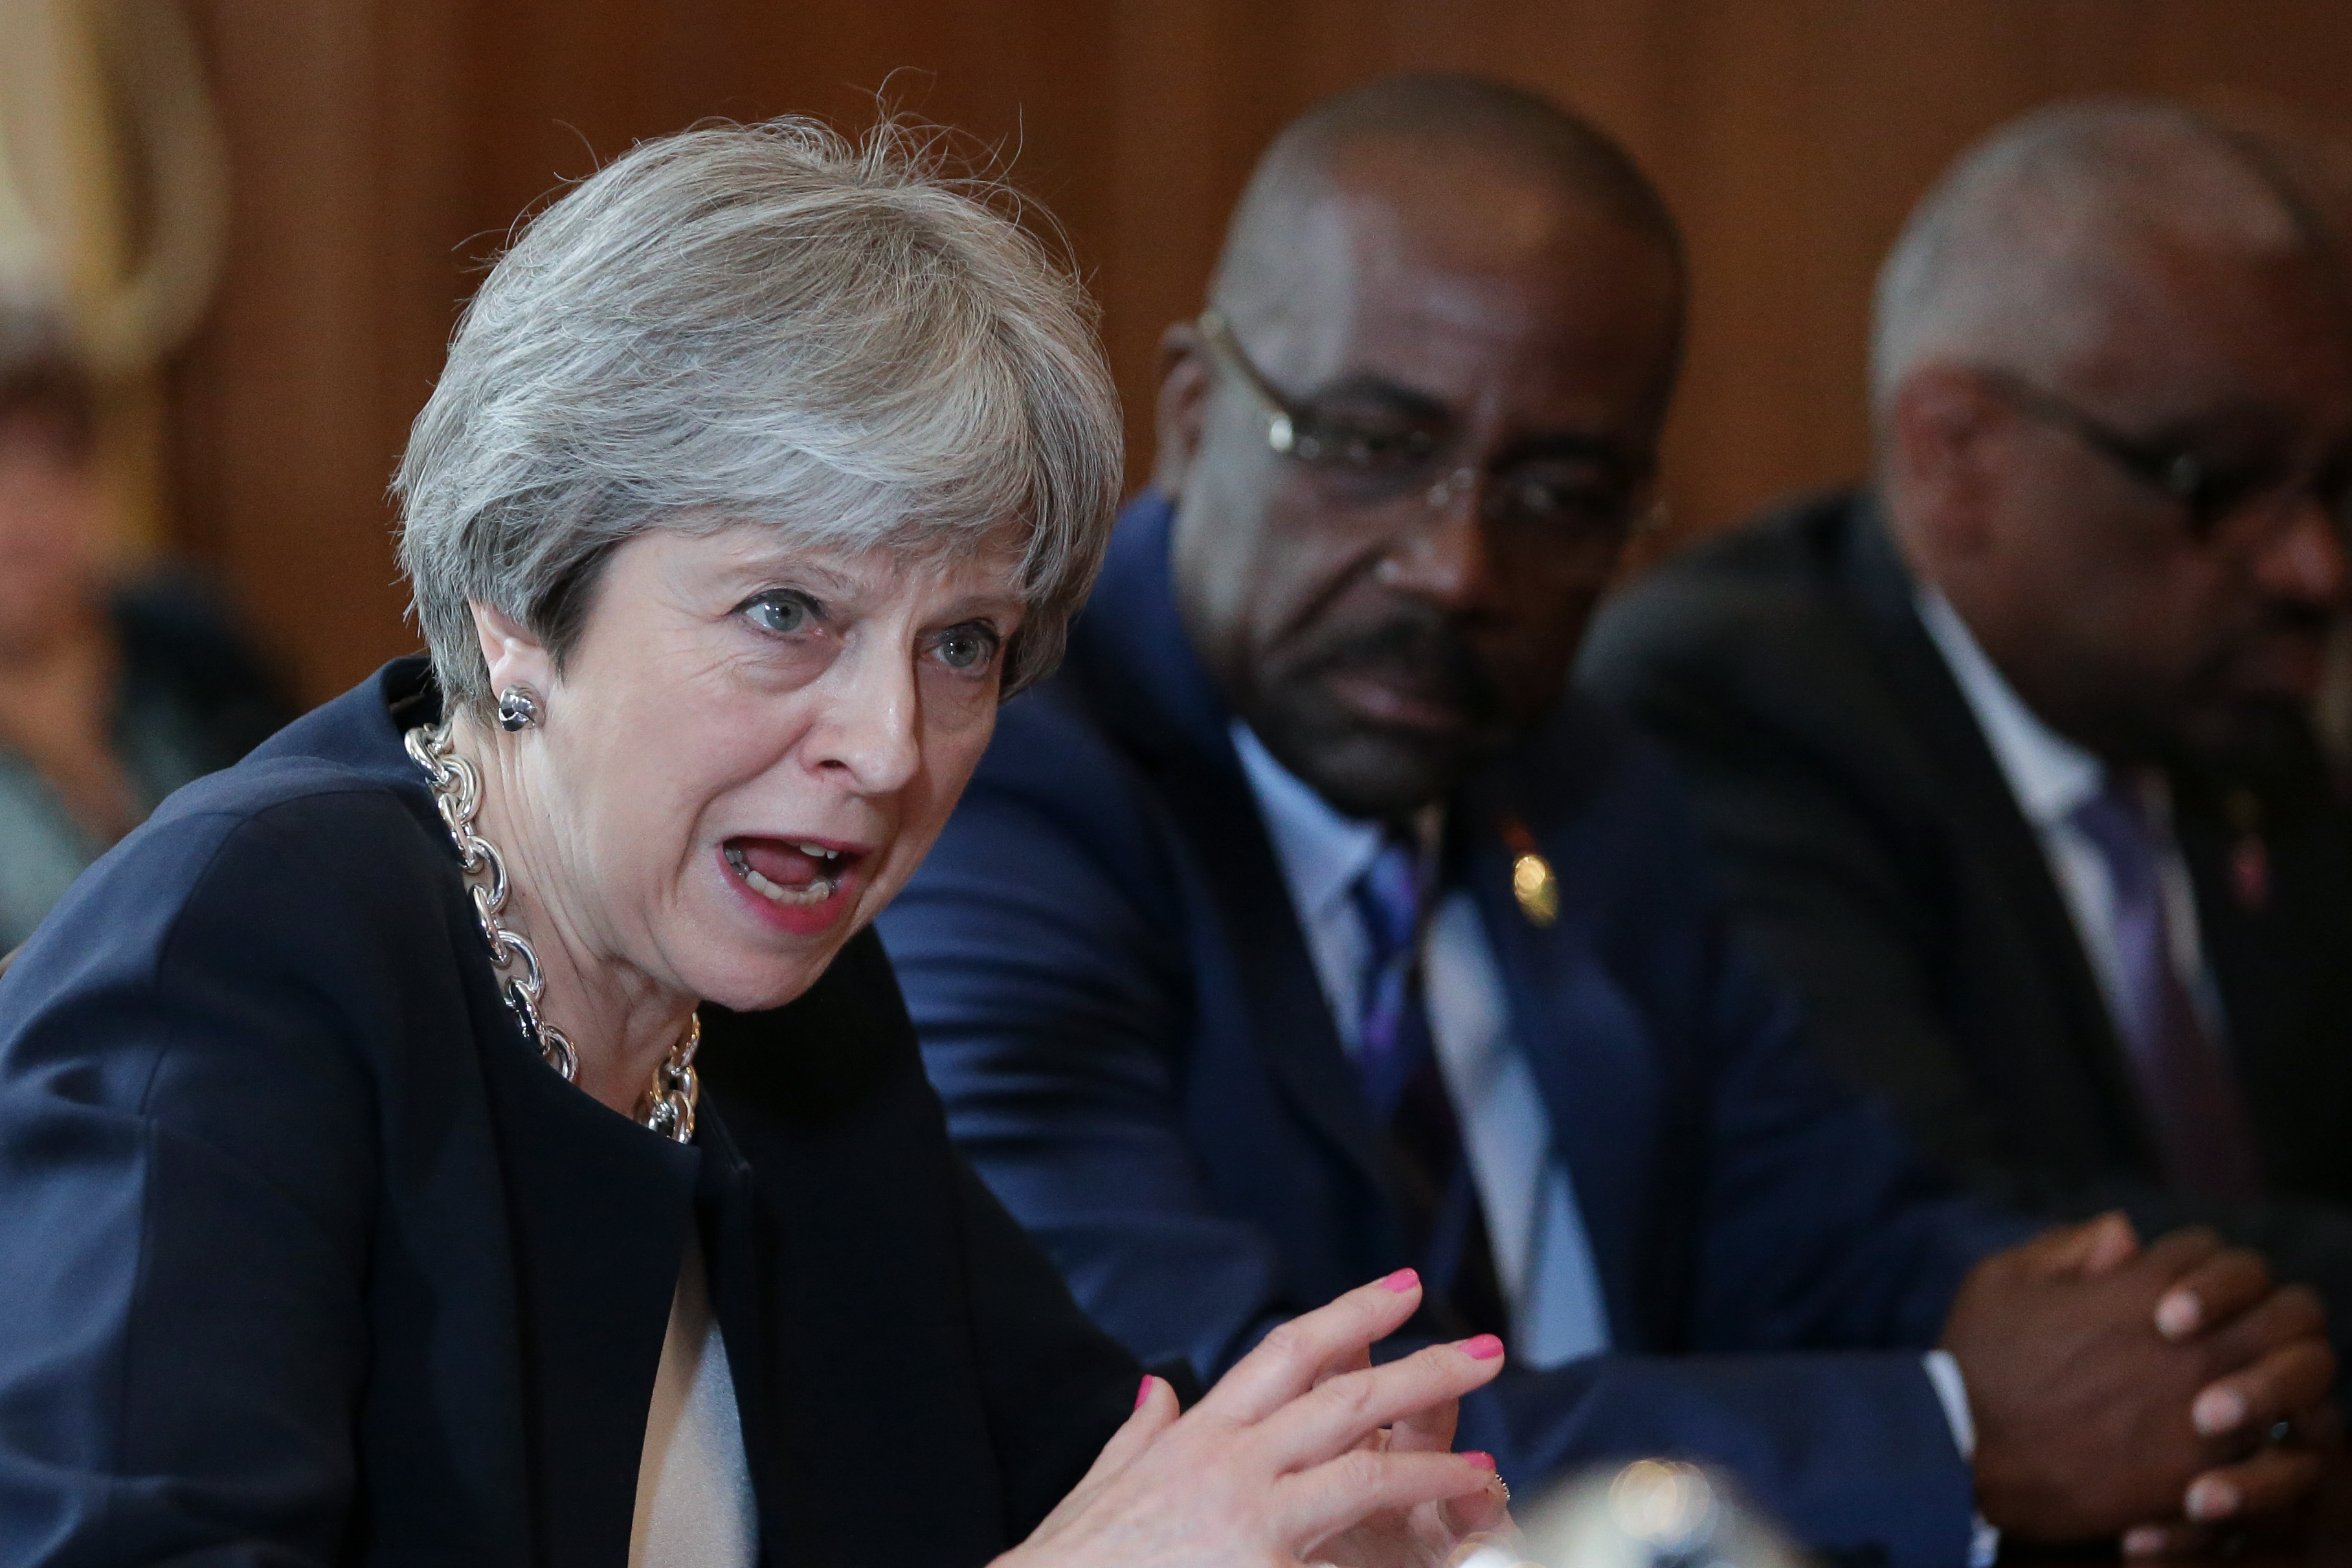 """LONDON, ENGLAND - APRIL 17: Britain's Prime Minister Theresa May hosts a meeting with leaders and representatives of Caribbean countries at 10 Downing Street on April 17, 2017 in London, England. Theresa May is meeting Caribbean leaders as the Government faces severe criticism over the treatment of the """"Windrush"""" generation of British residents. (Photo by Daniel Leal-Olivas - WPA Pool/Getty Images)"""